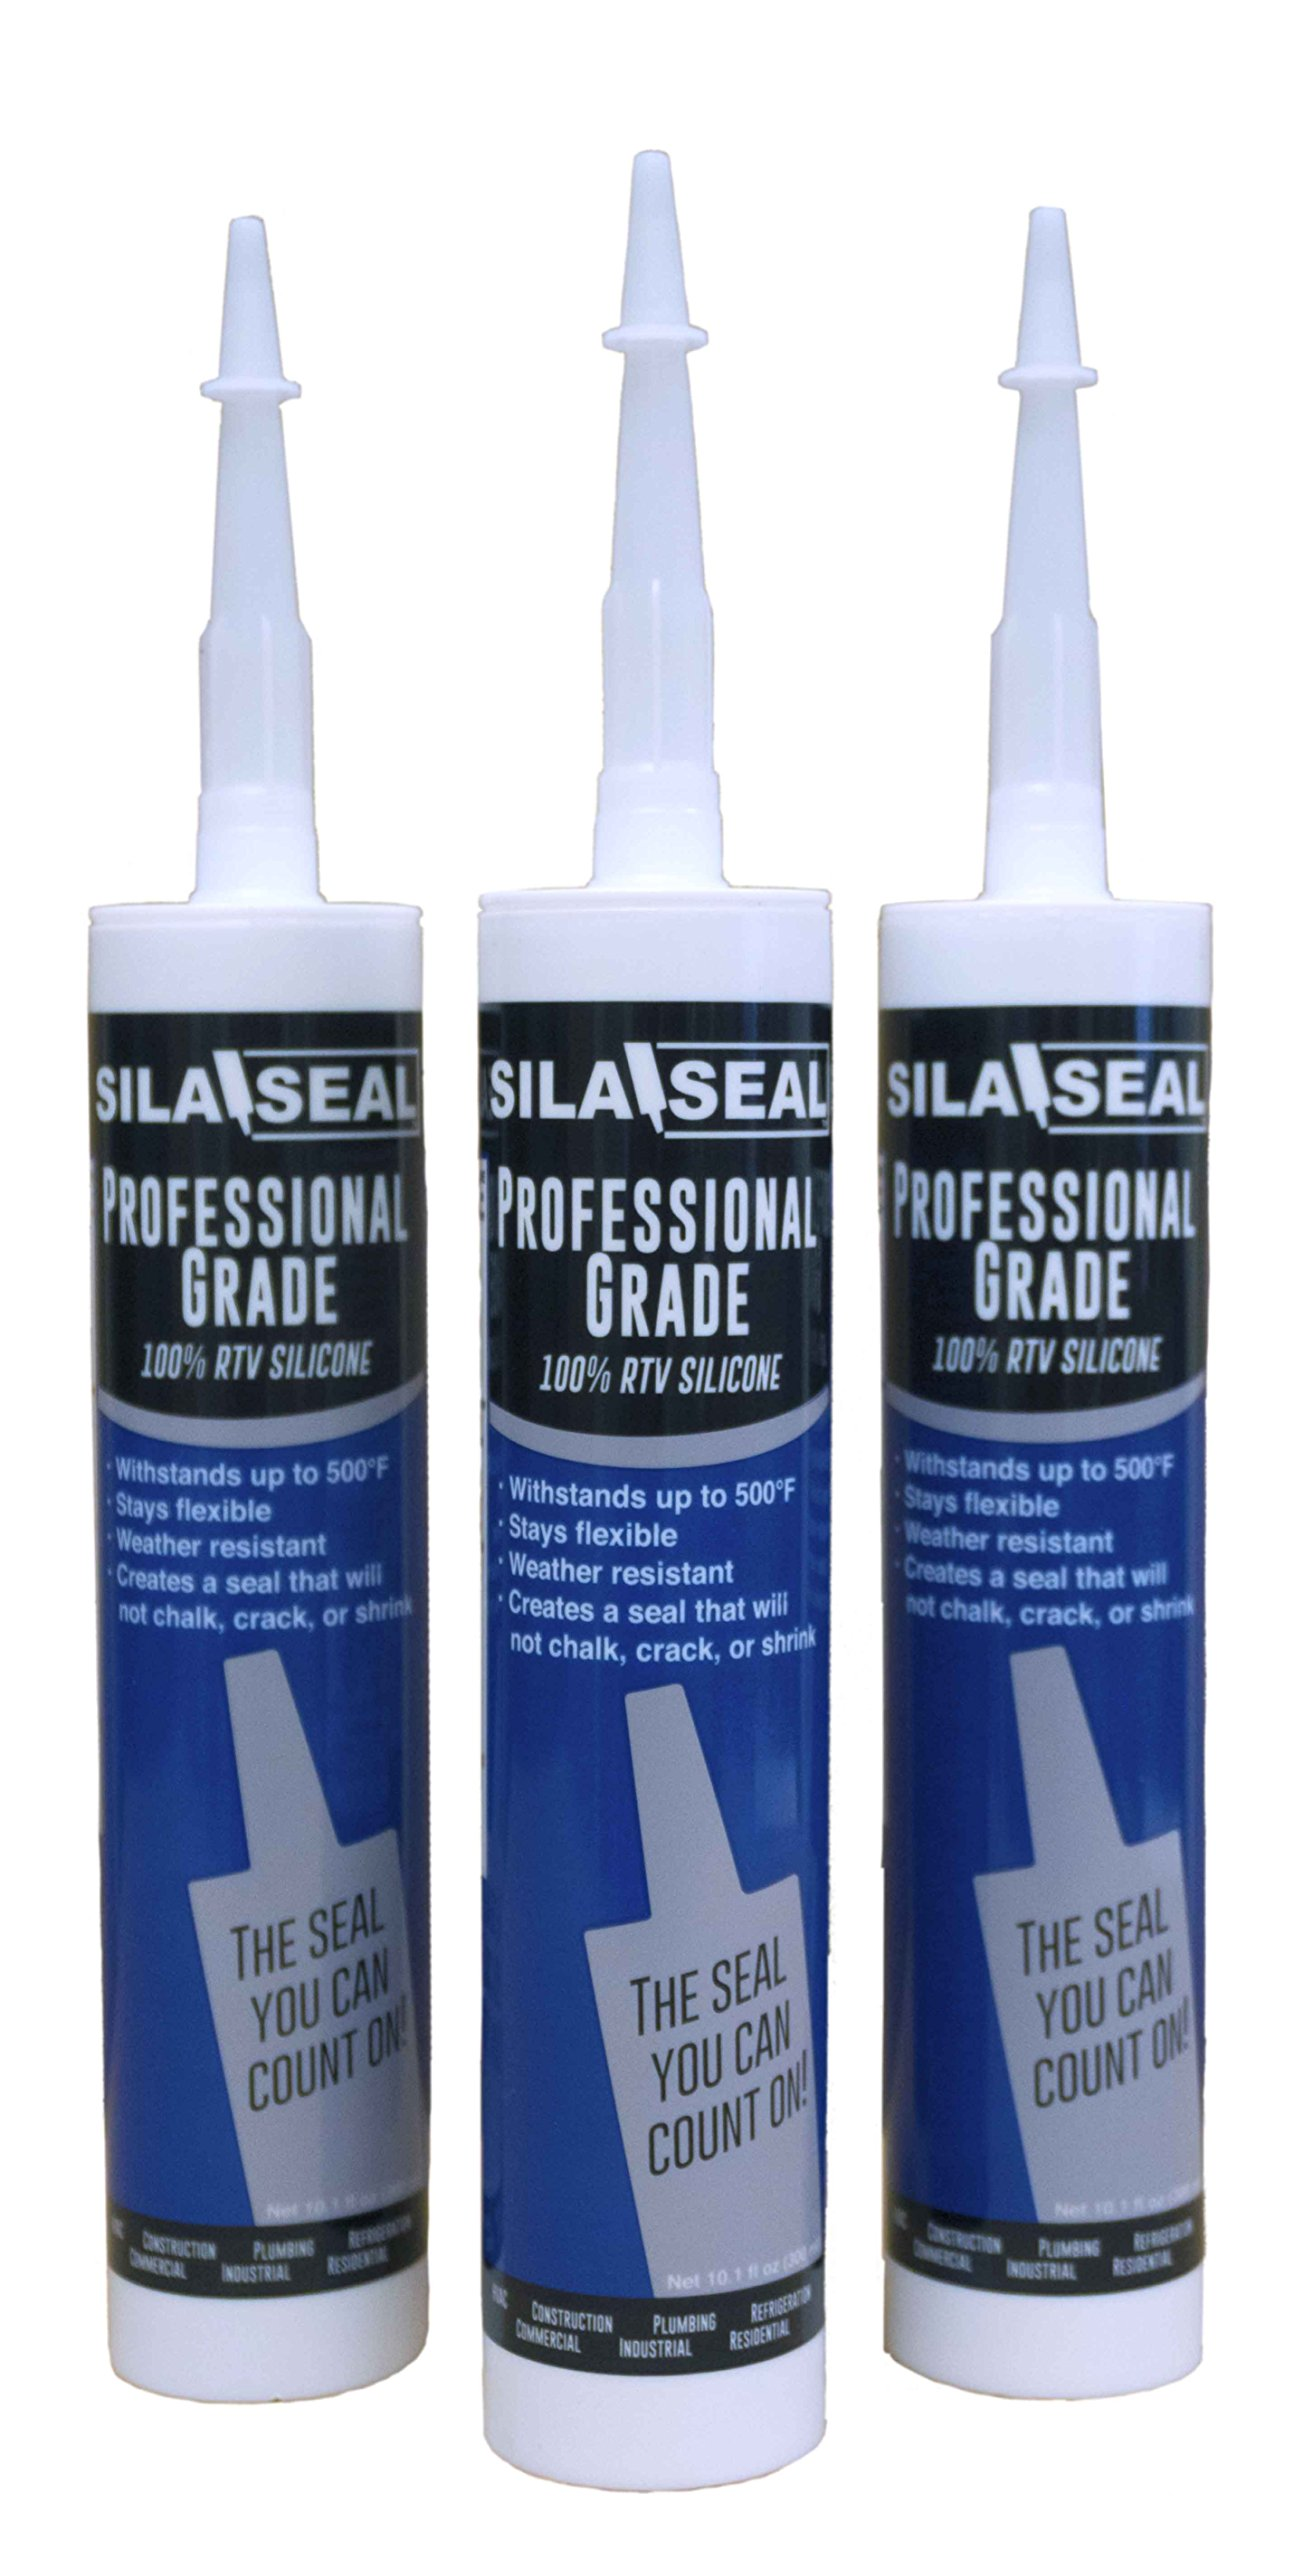 SILA-SEAL Aluminum Professional Grade (Gray) 100% RTV Silicone with reclosable nozzle, 3-pack case